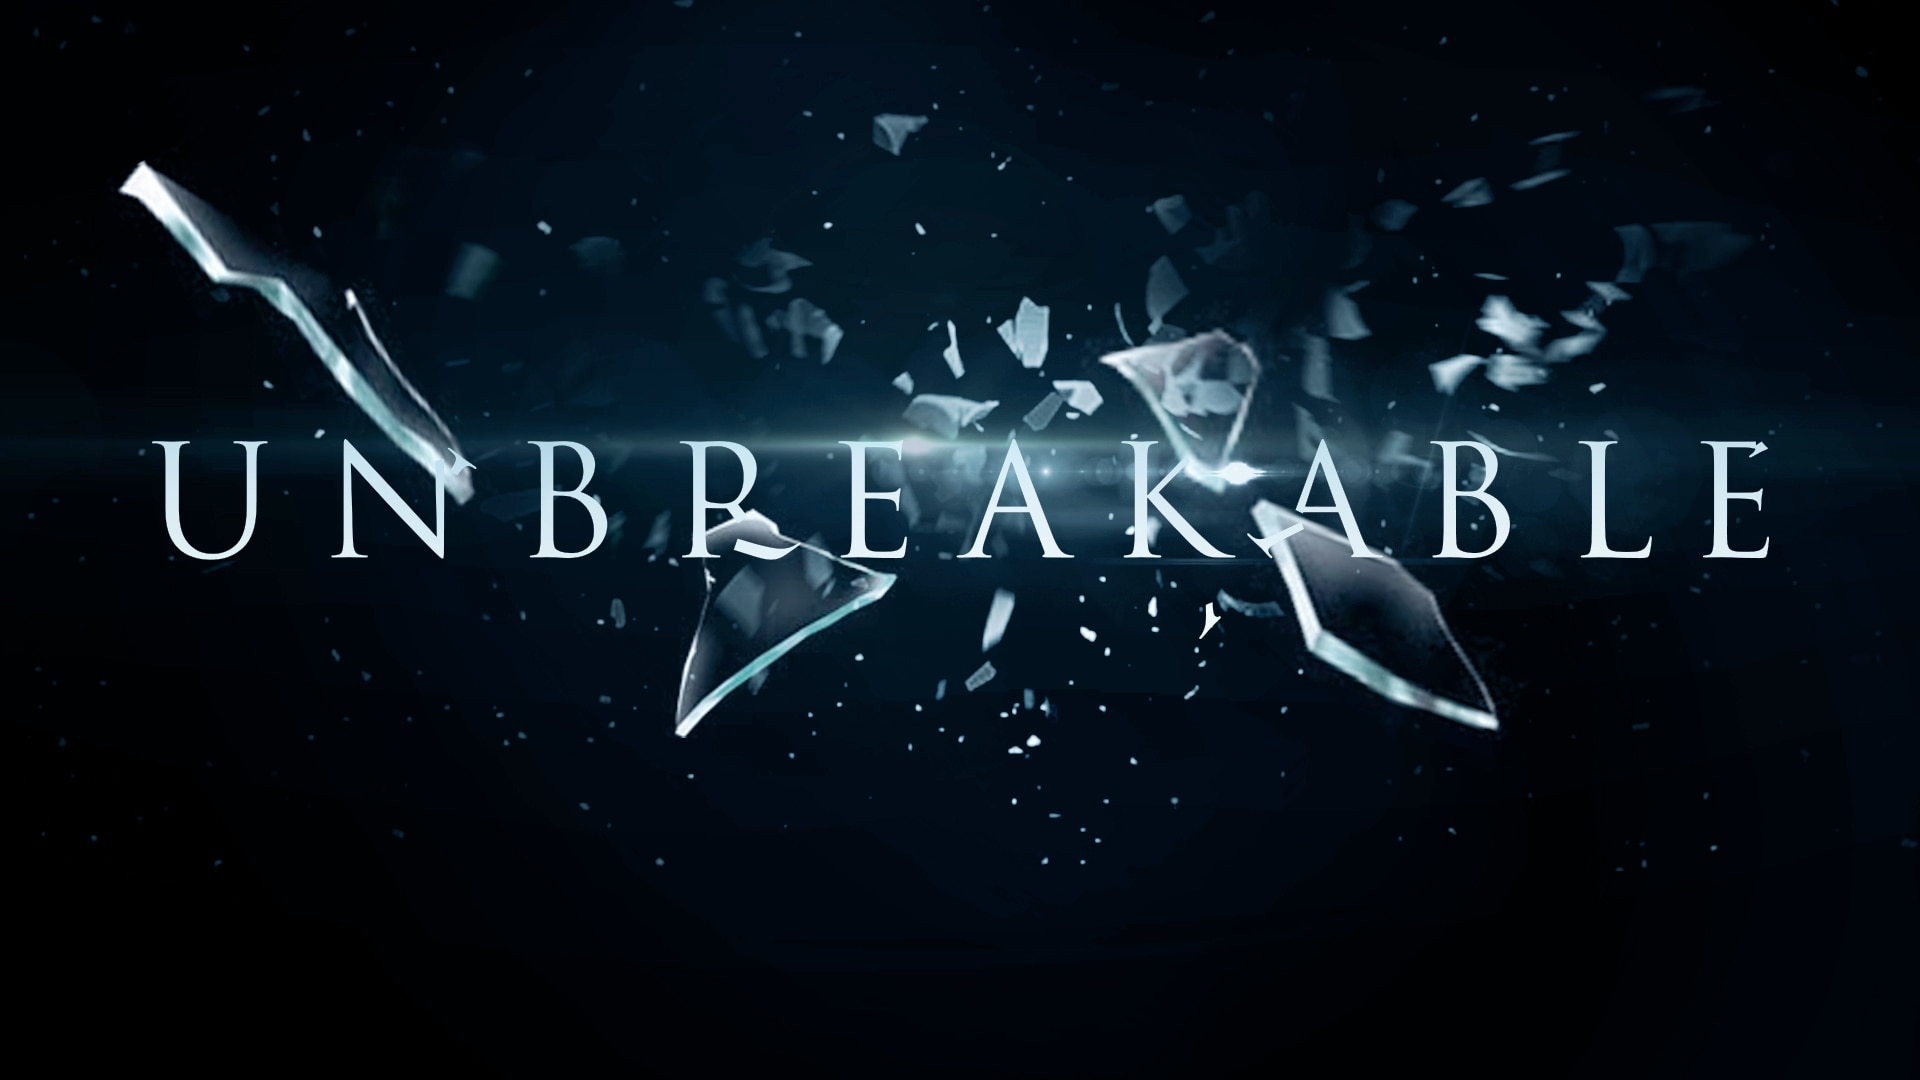 unbreakable banner - M. Night Shyamalan Reveals Unbreakable 2 Title and Release Date!